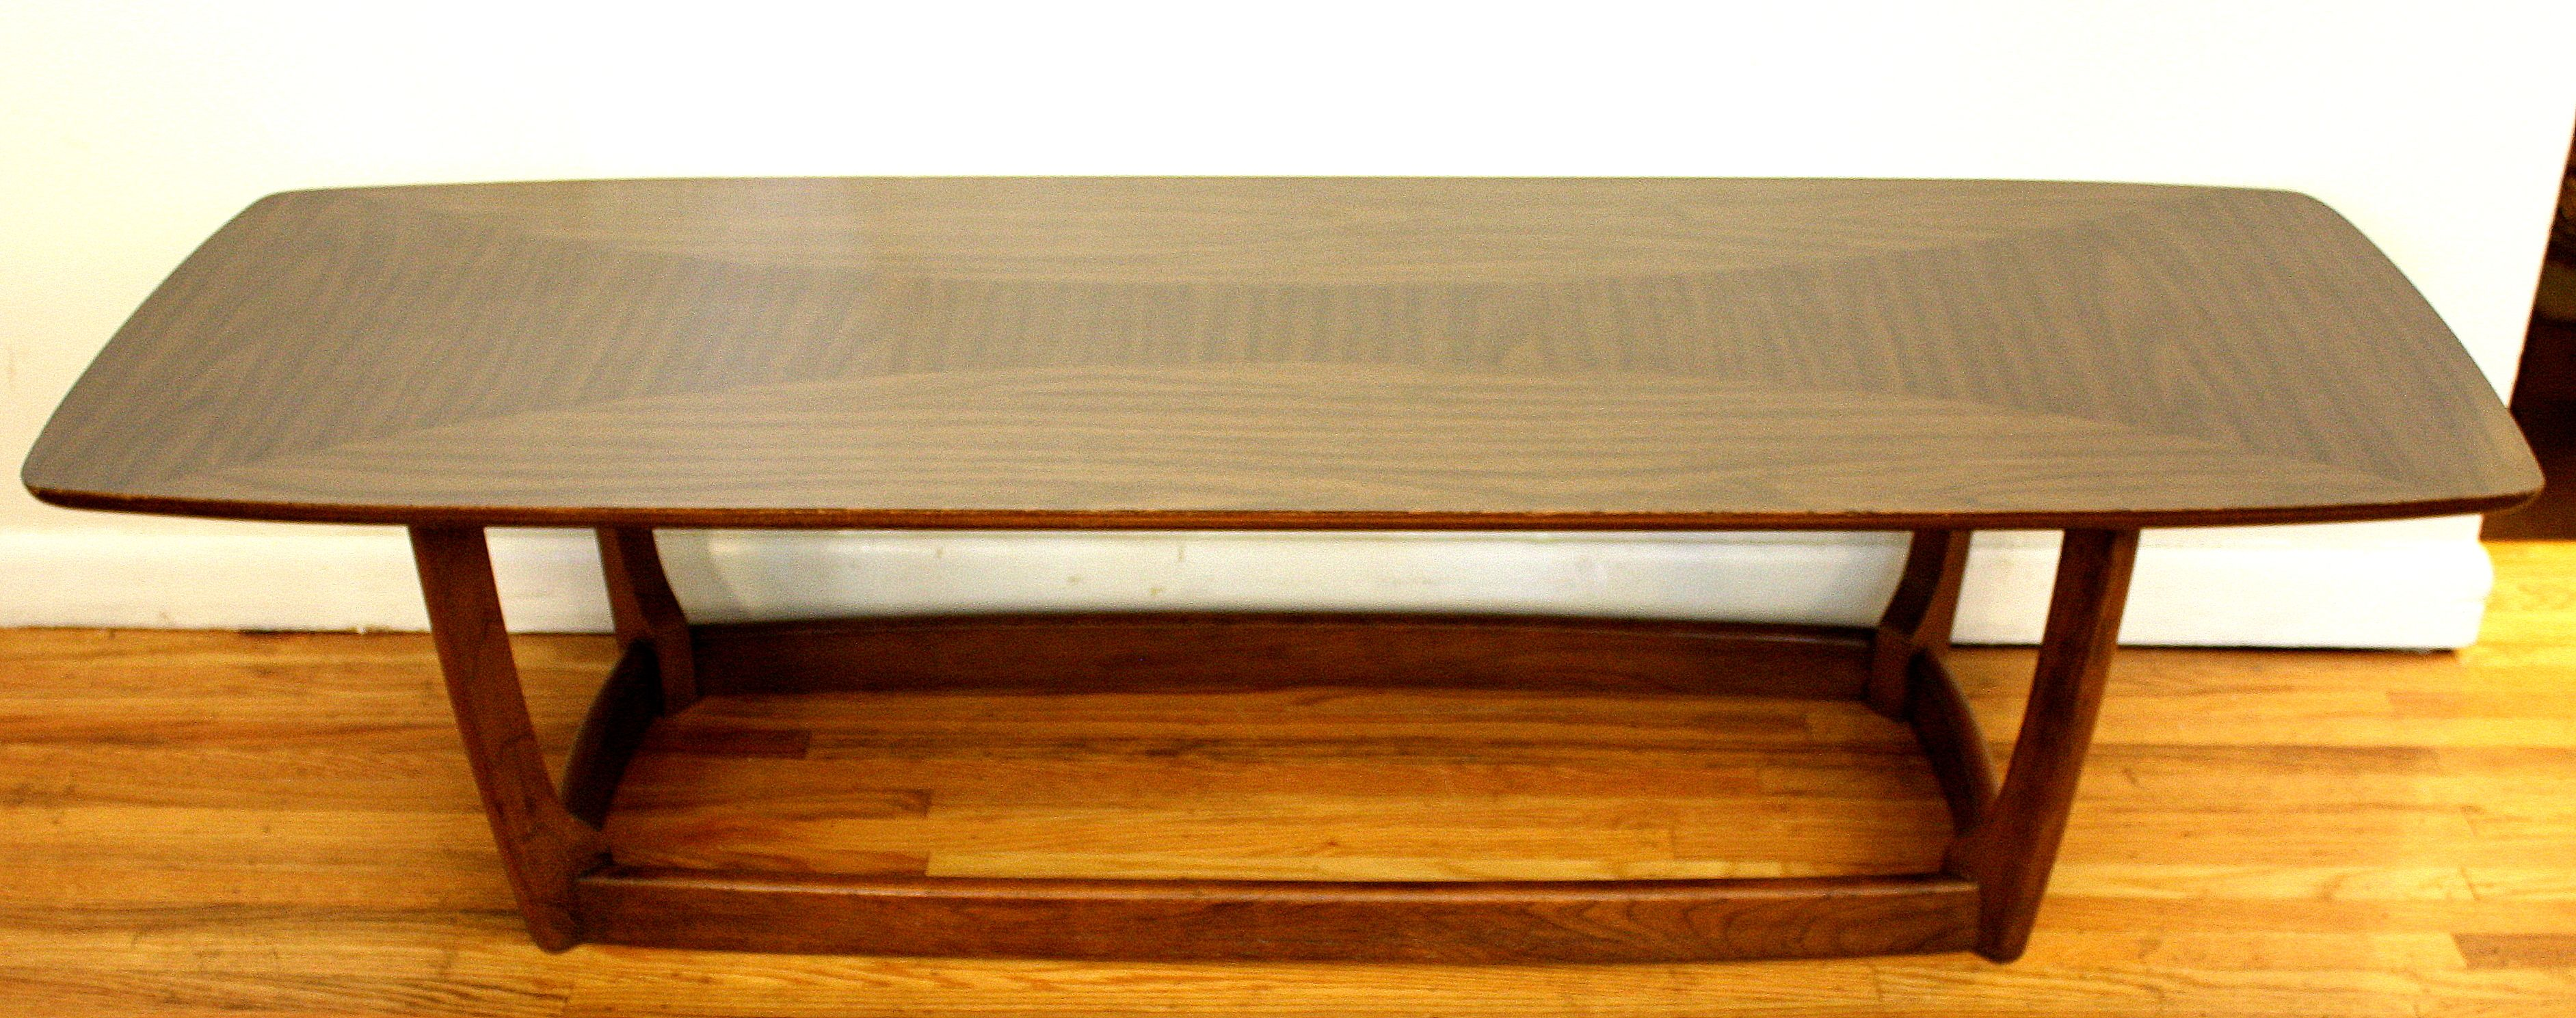 Mid Century Modern Surfboard Coffee Table This is a mid century